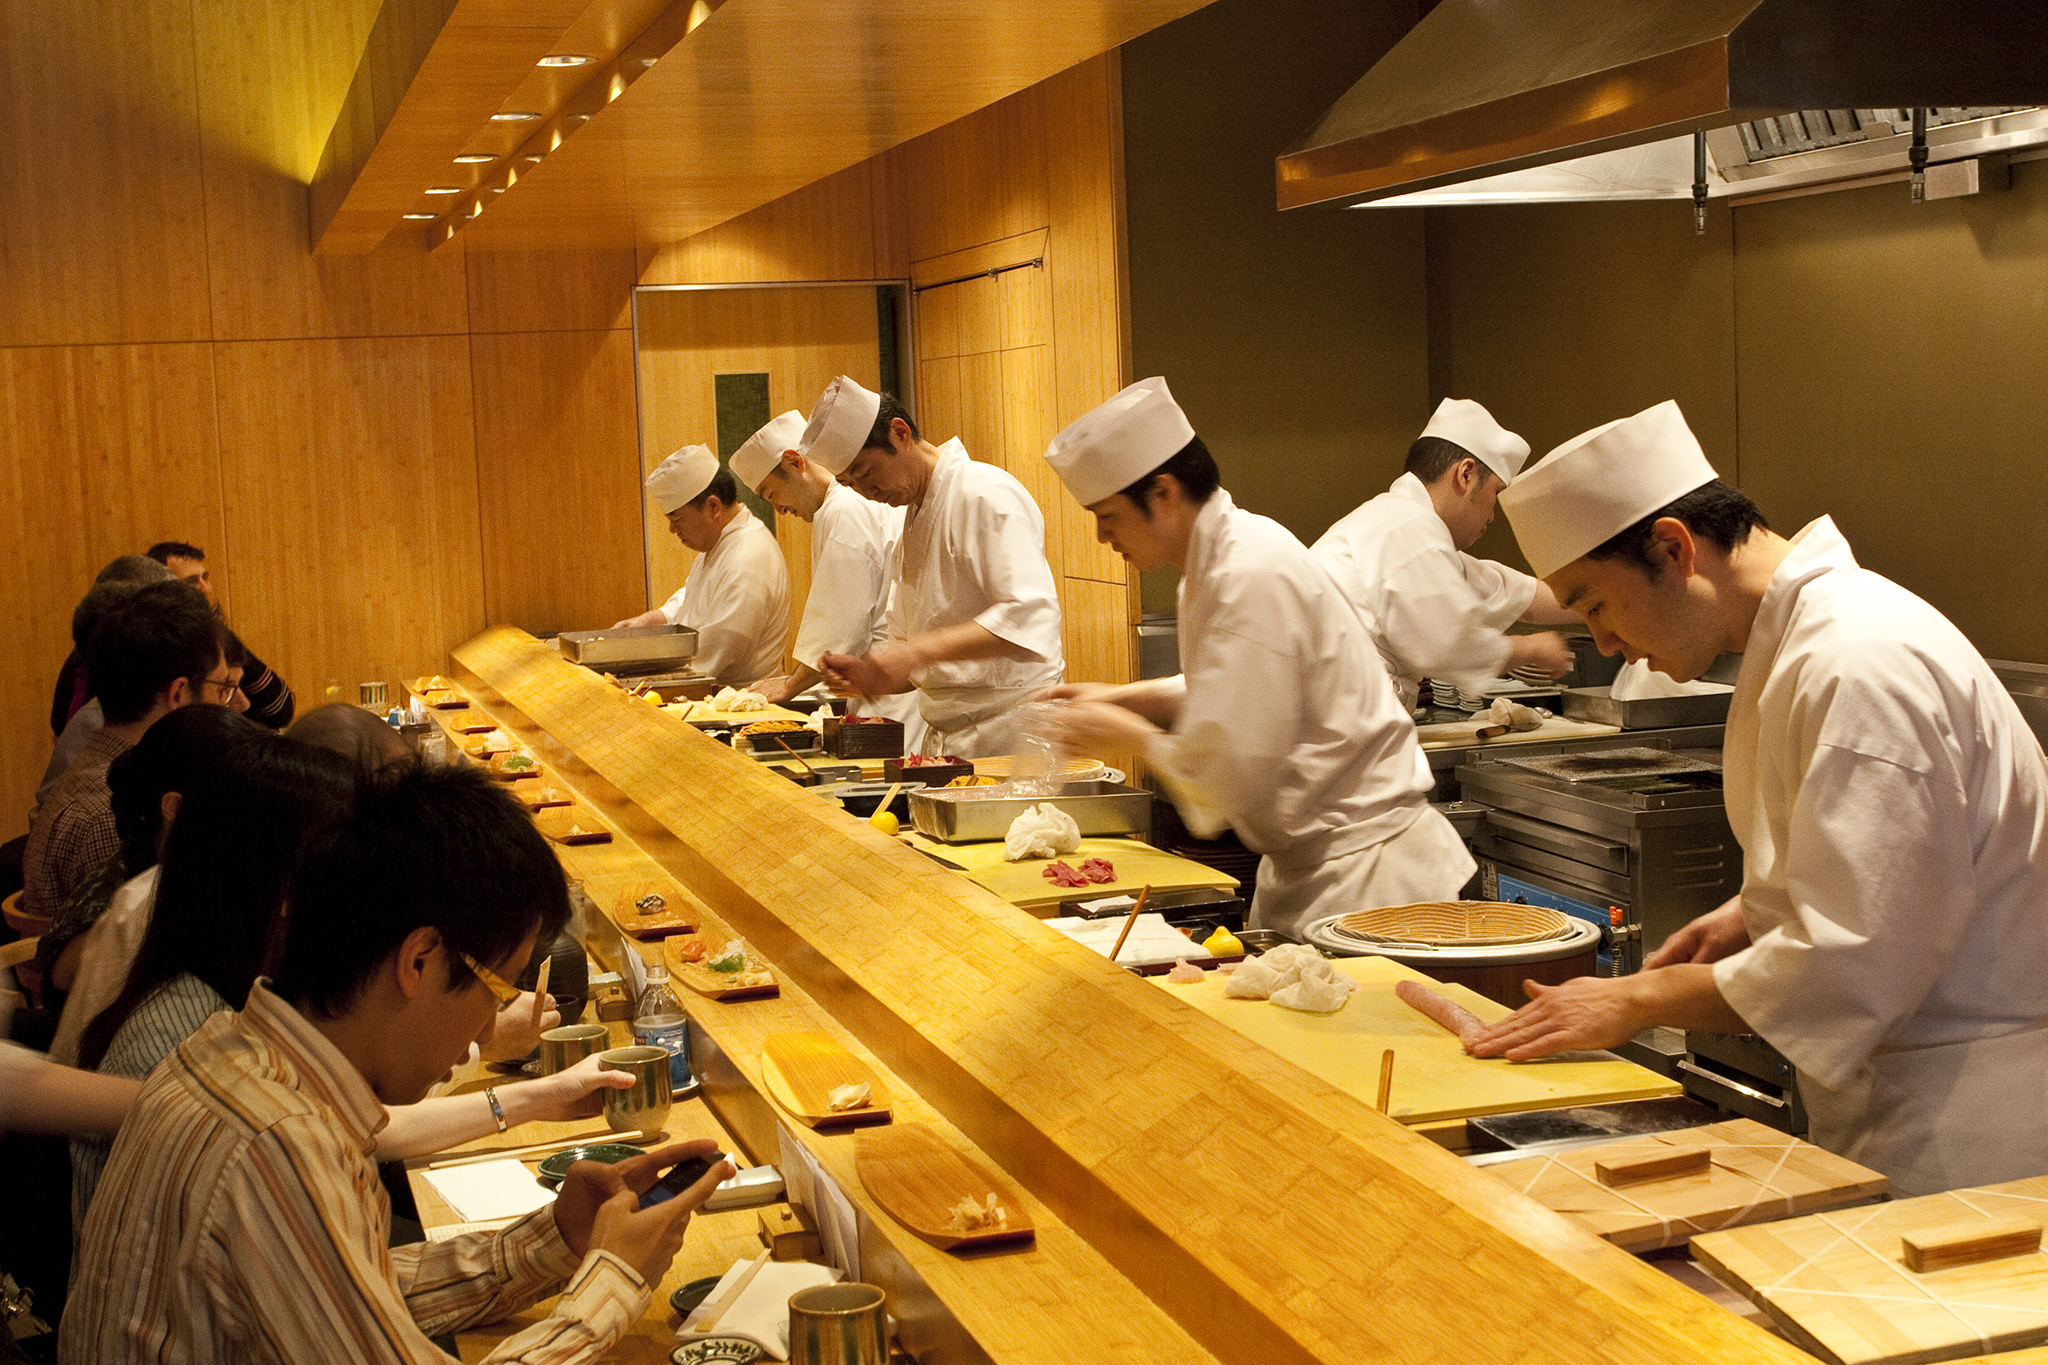 Sushi Yasuda | Restaurants in Midtown East, New York